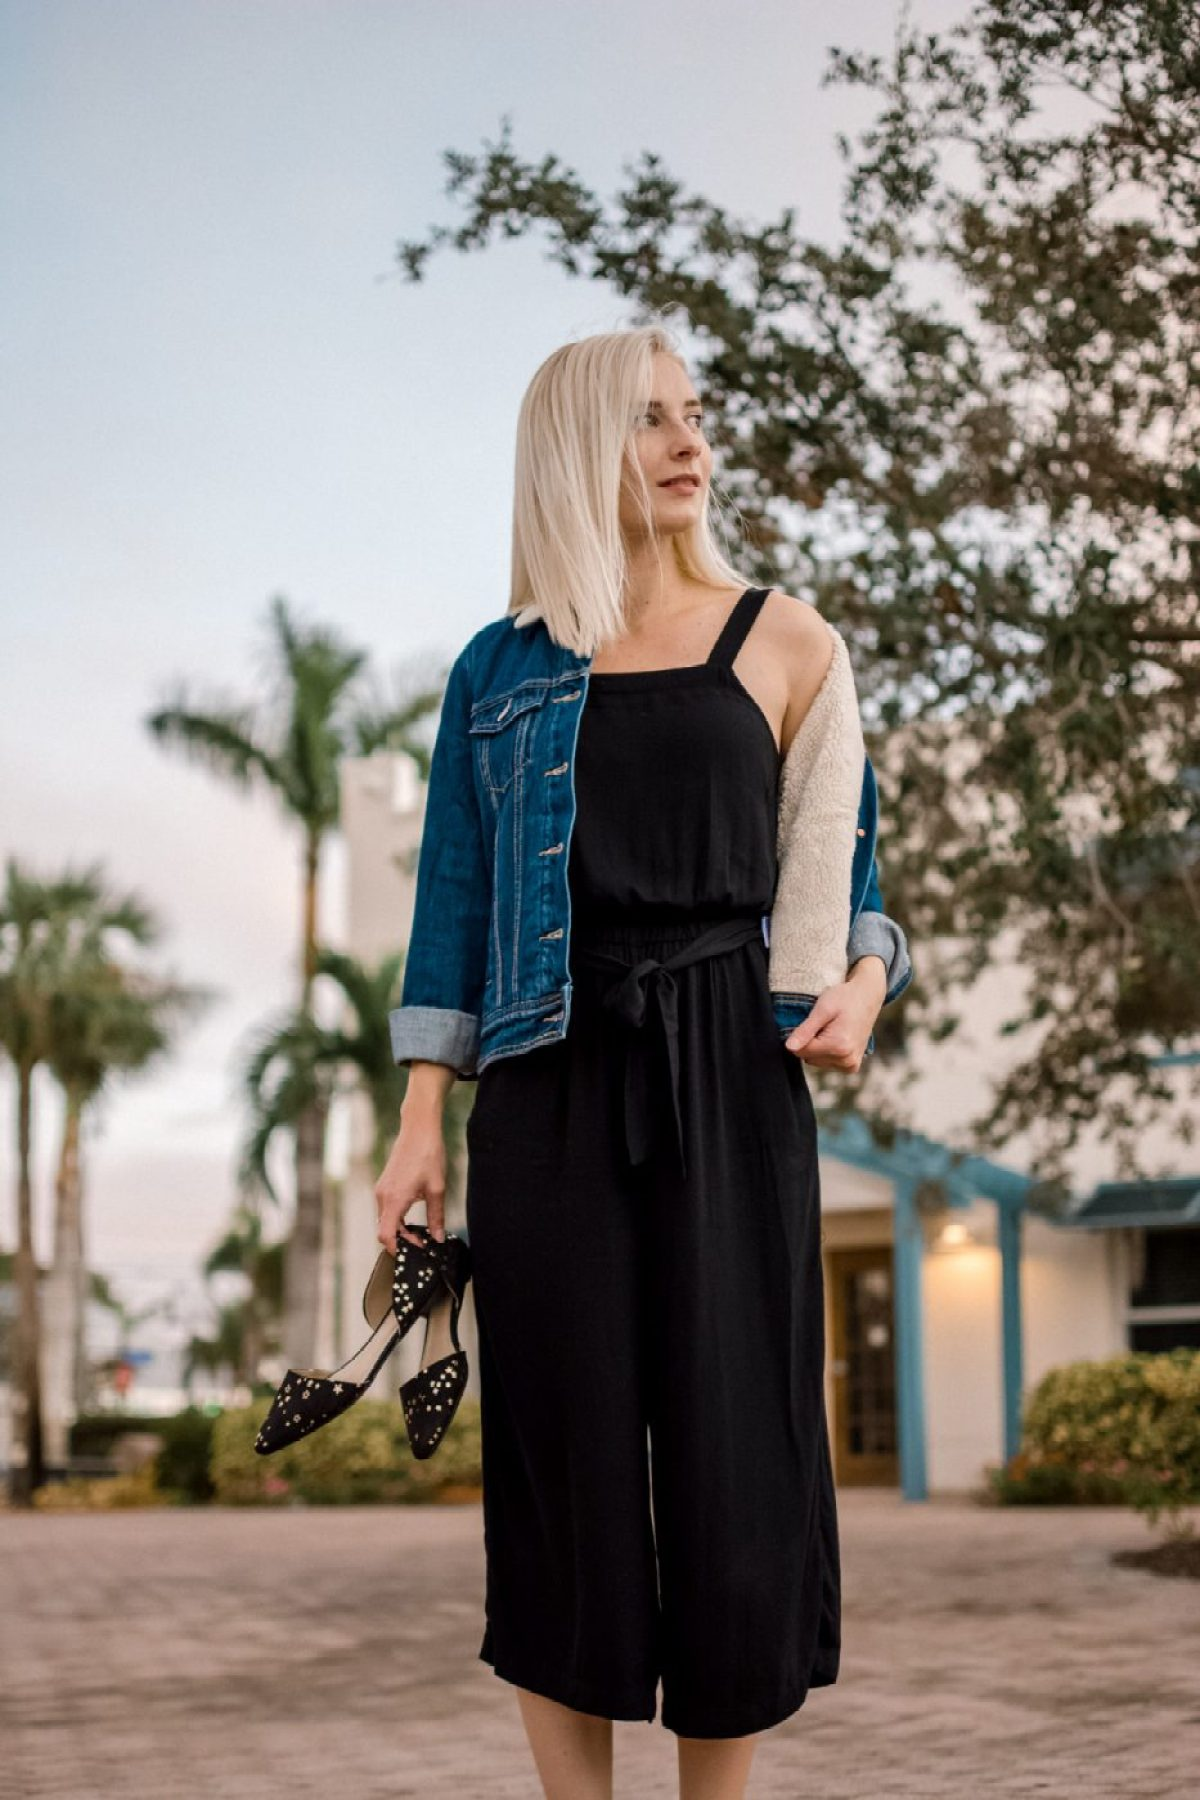 Jenny wearing Sherpa Jacket & Jumpsuit from Old Navy - Sweet Teal